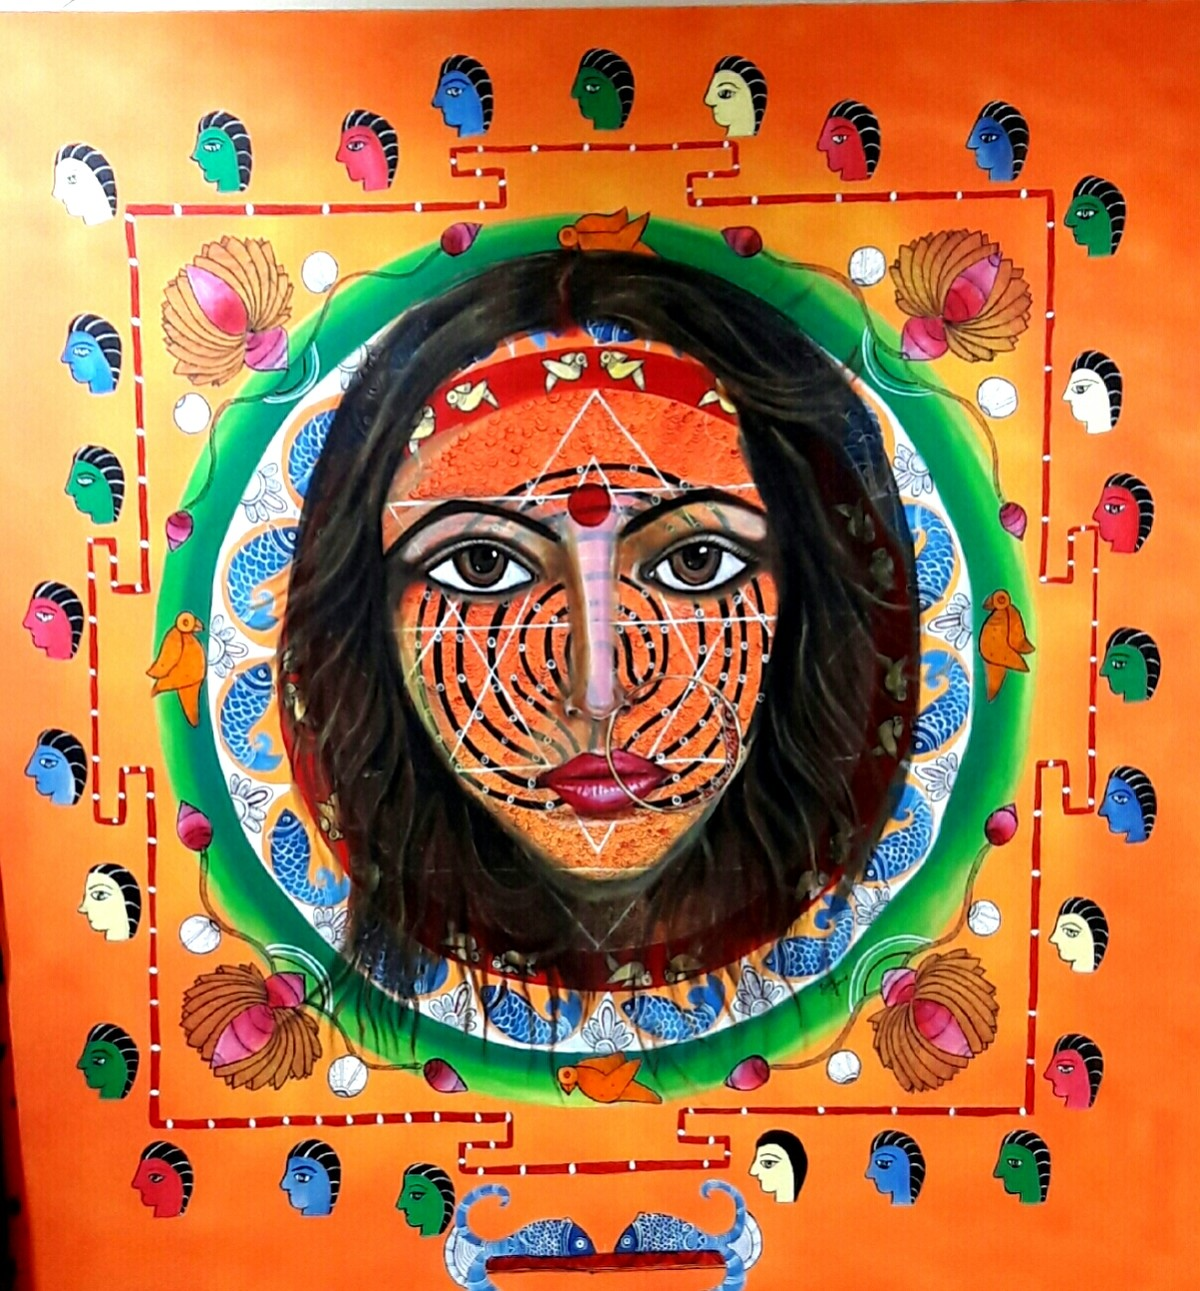 Garbh tantra and meditation by Soma Anand, Conceptual Painting, Acrylic on Canvas, Jaffa color